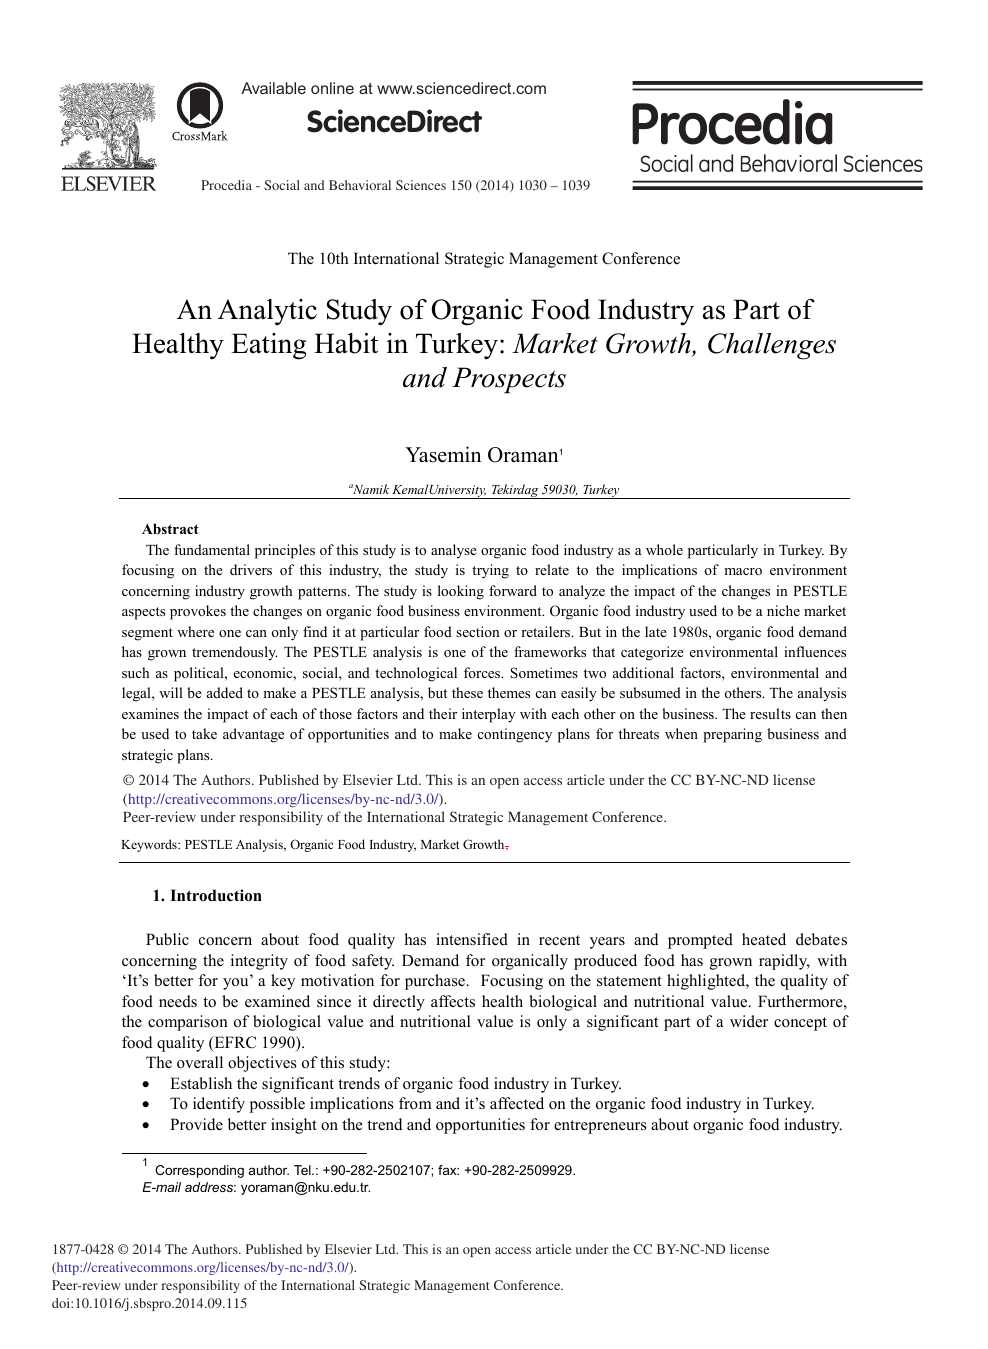 An Analytic Study Of Organic Food Industry As Part Of Healthy Eating Habit In Turkey Market Growth Challenges And Prospects Topic Of Research Paper In Agriculture Forestry And Fisheries Download Scholarly